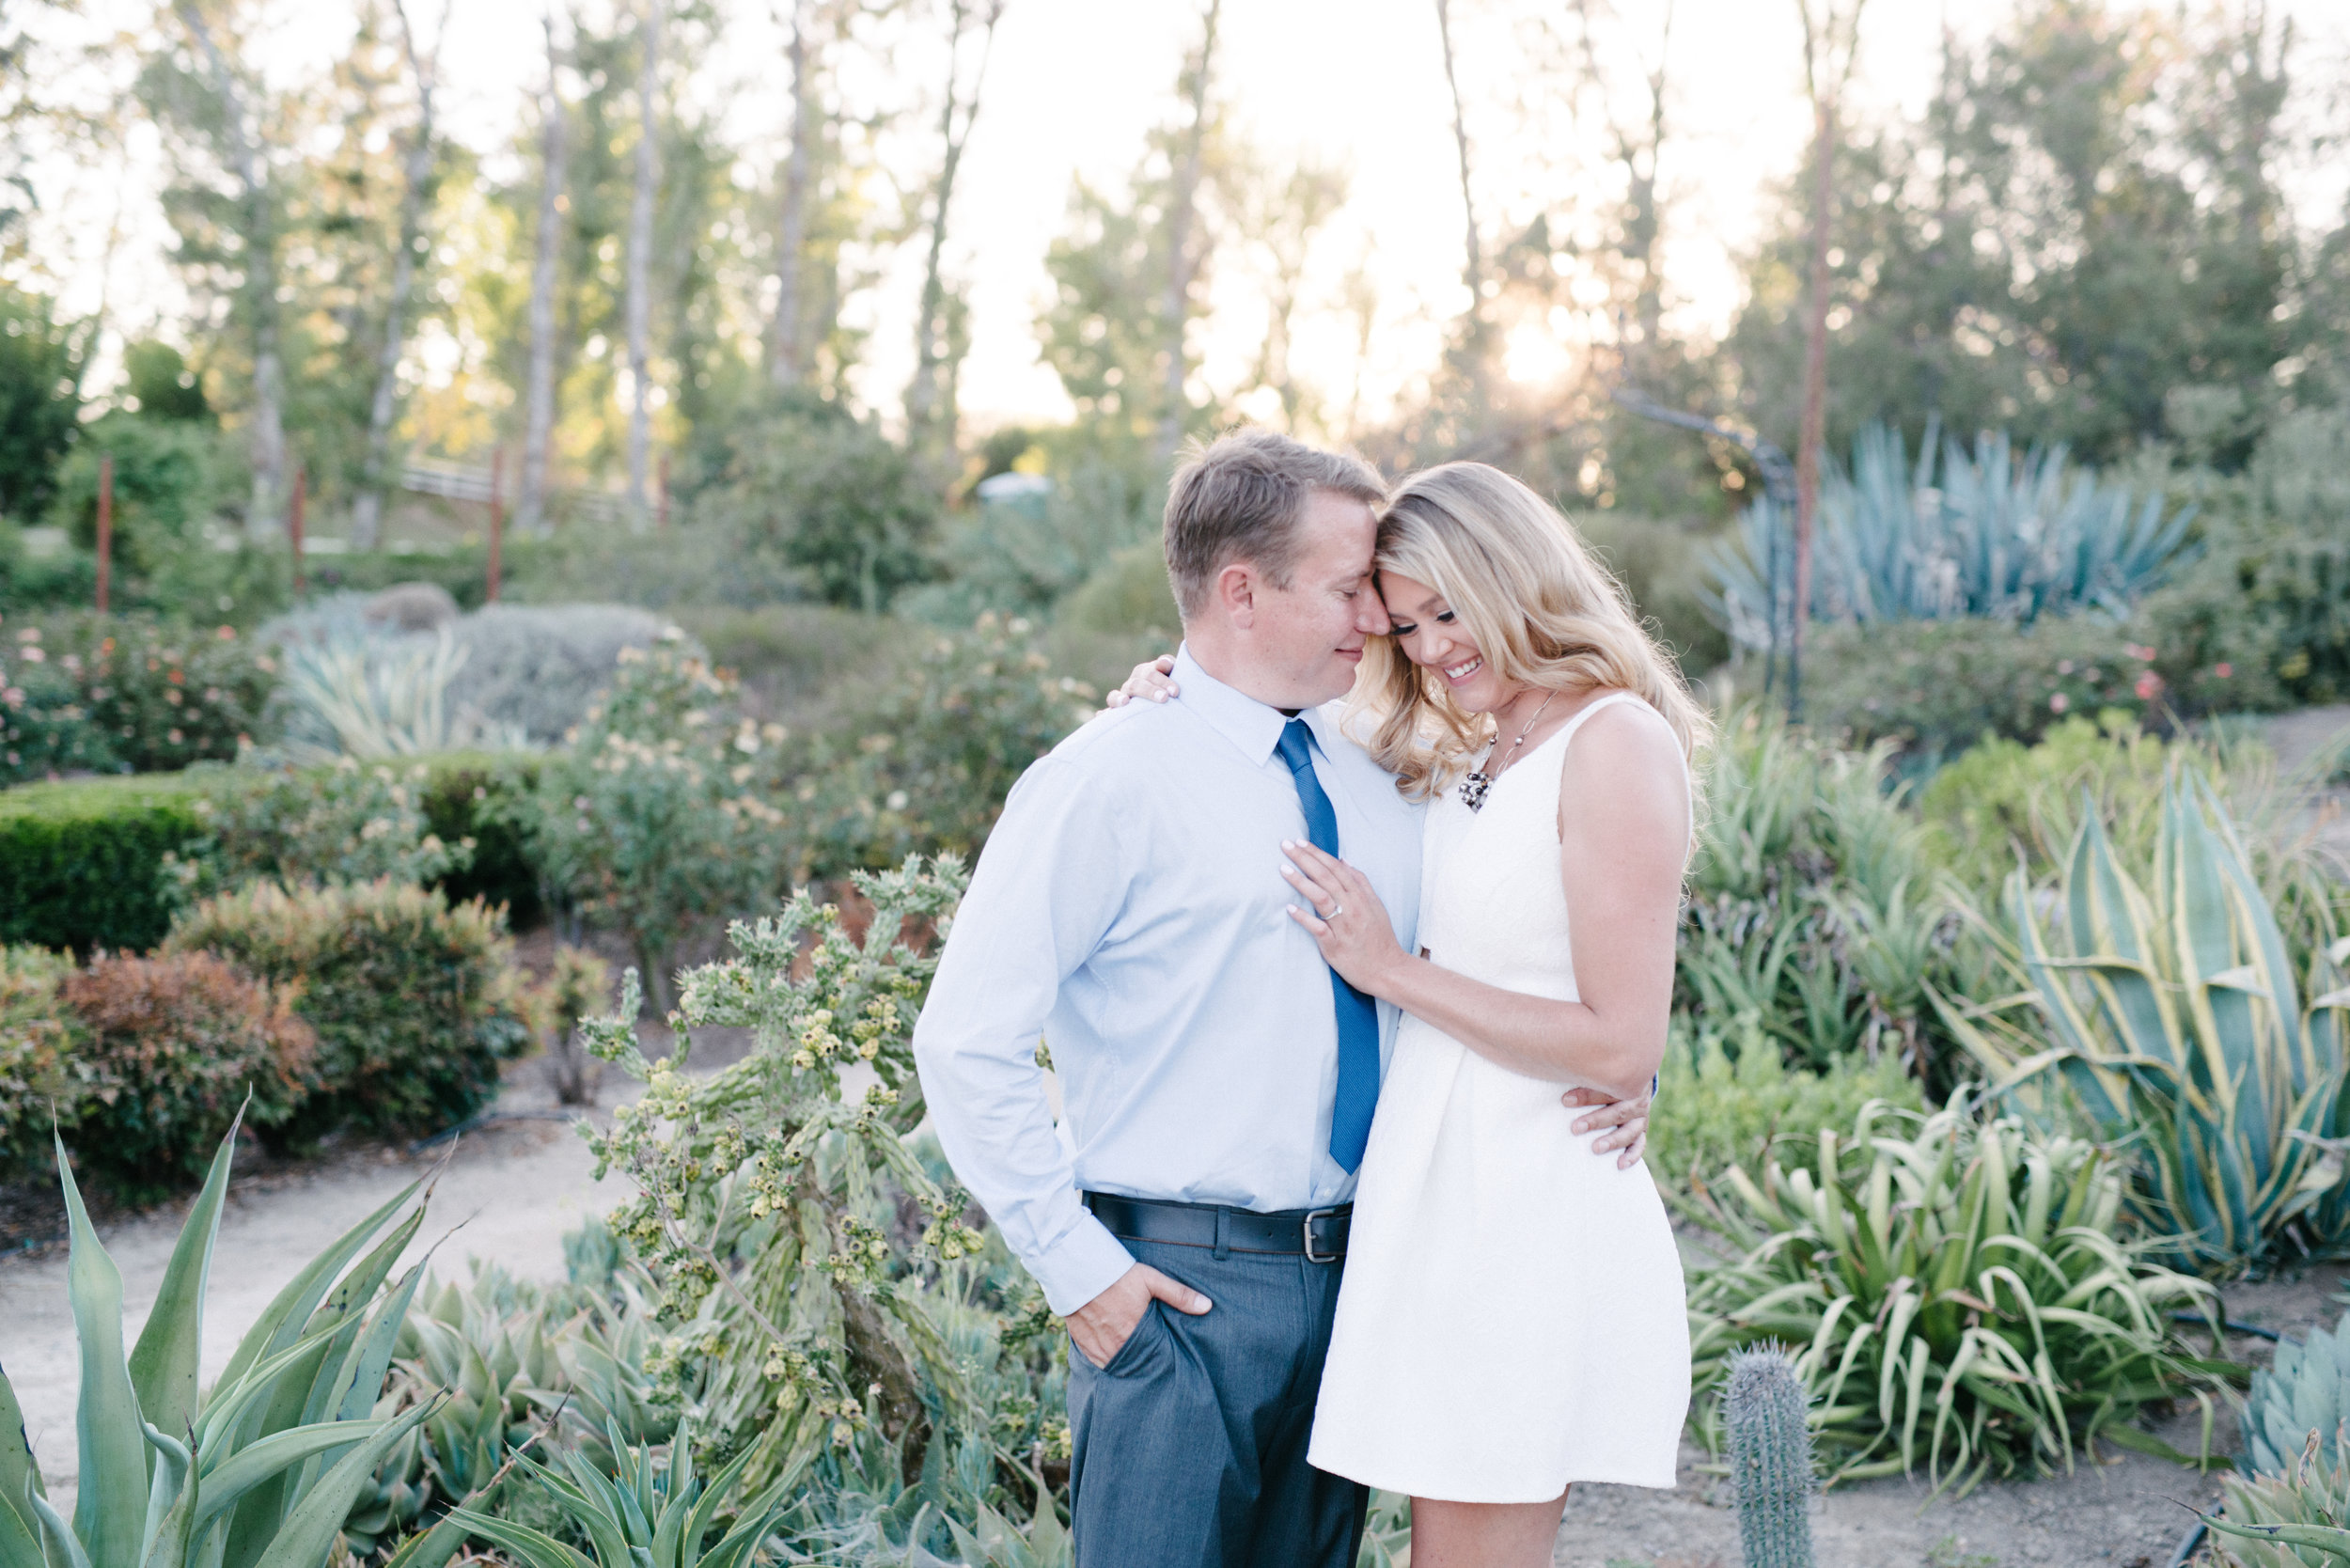 Temecula Rose garden was the PERFECT location for these two!